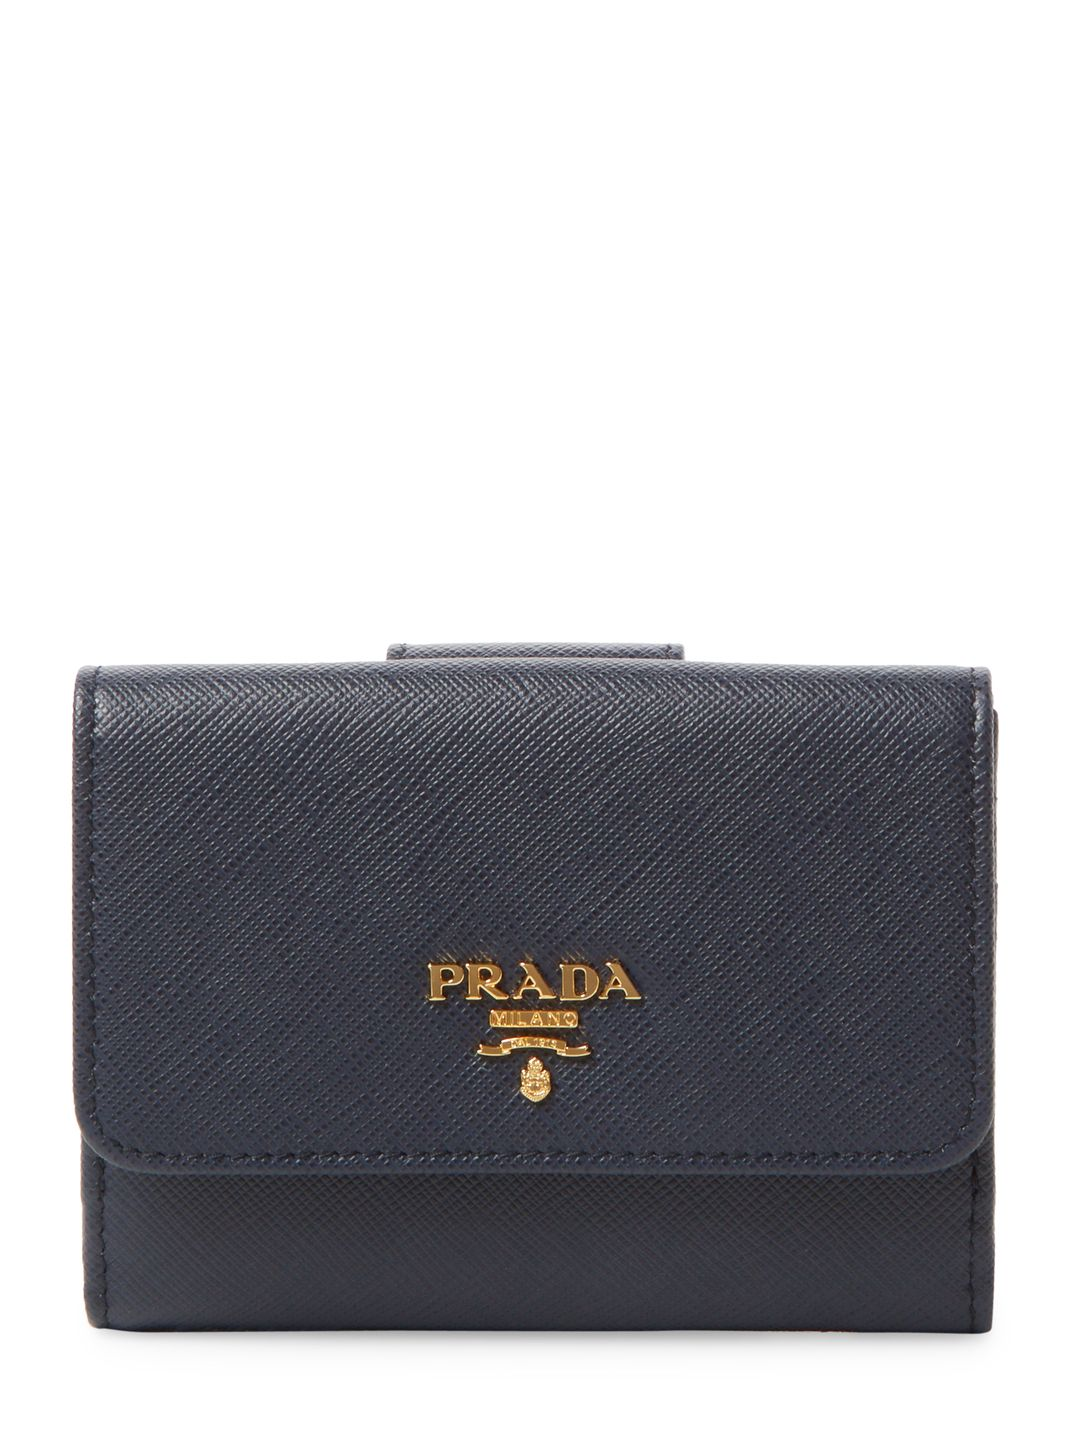 3b2737d93f11 ... shopping prada womens saffiano leather short wallet navy. prada prada  pinterest leather shorts navy and ...